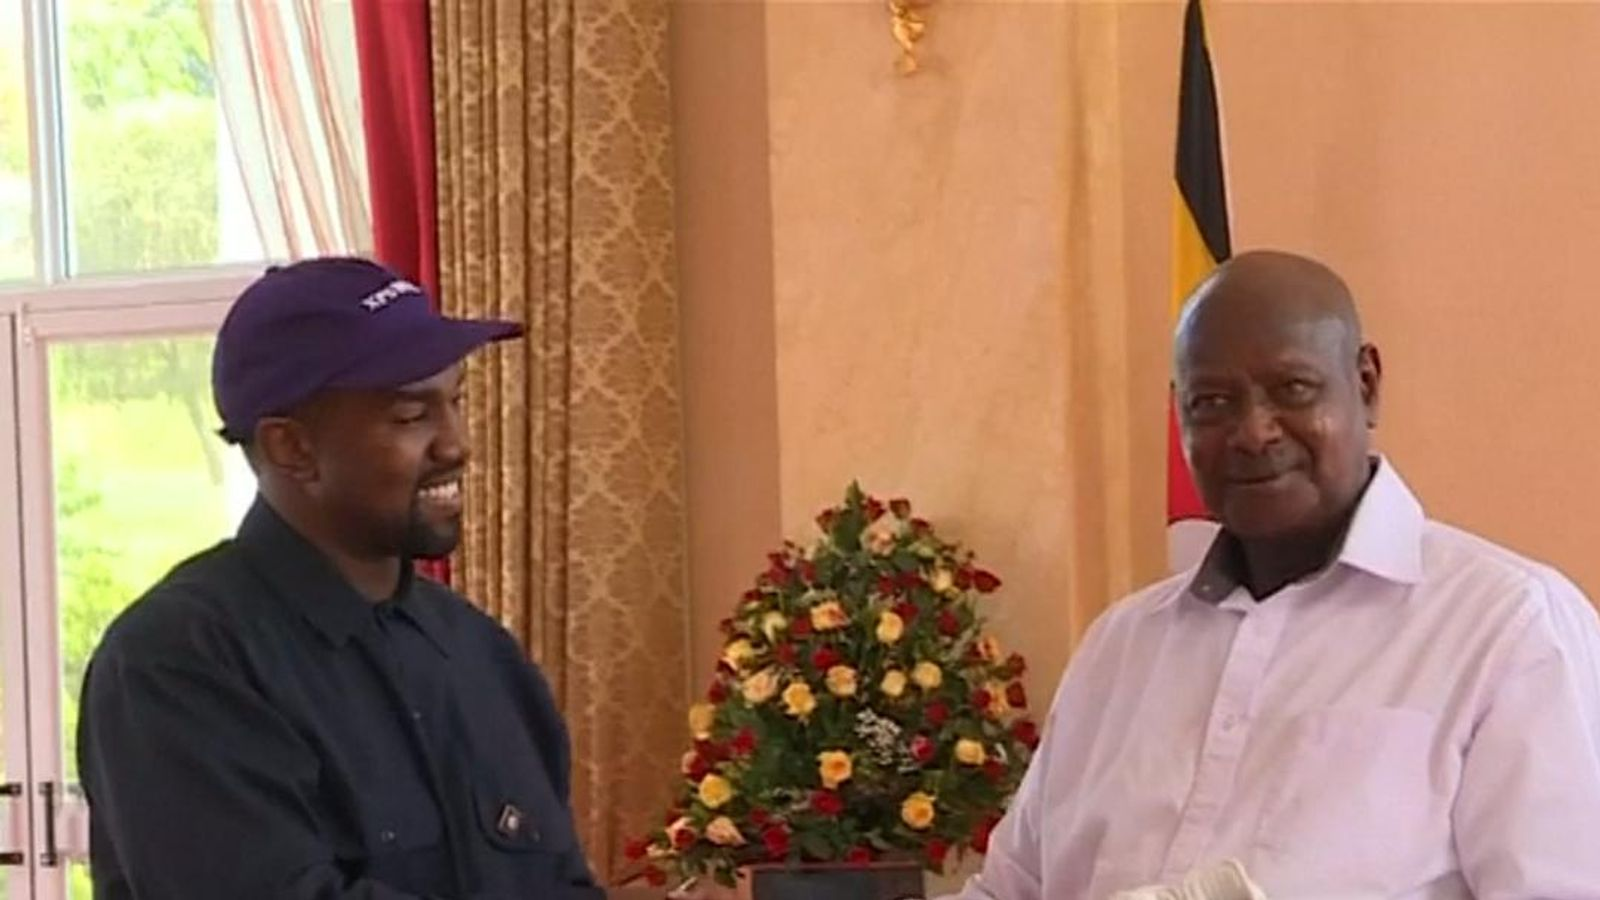 Kanye West gives Ugandan leader pair of trainers on trip to east African country